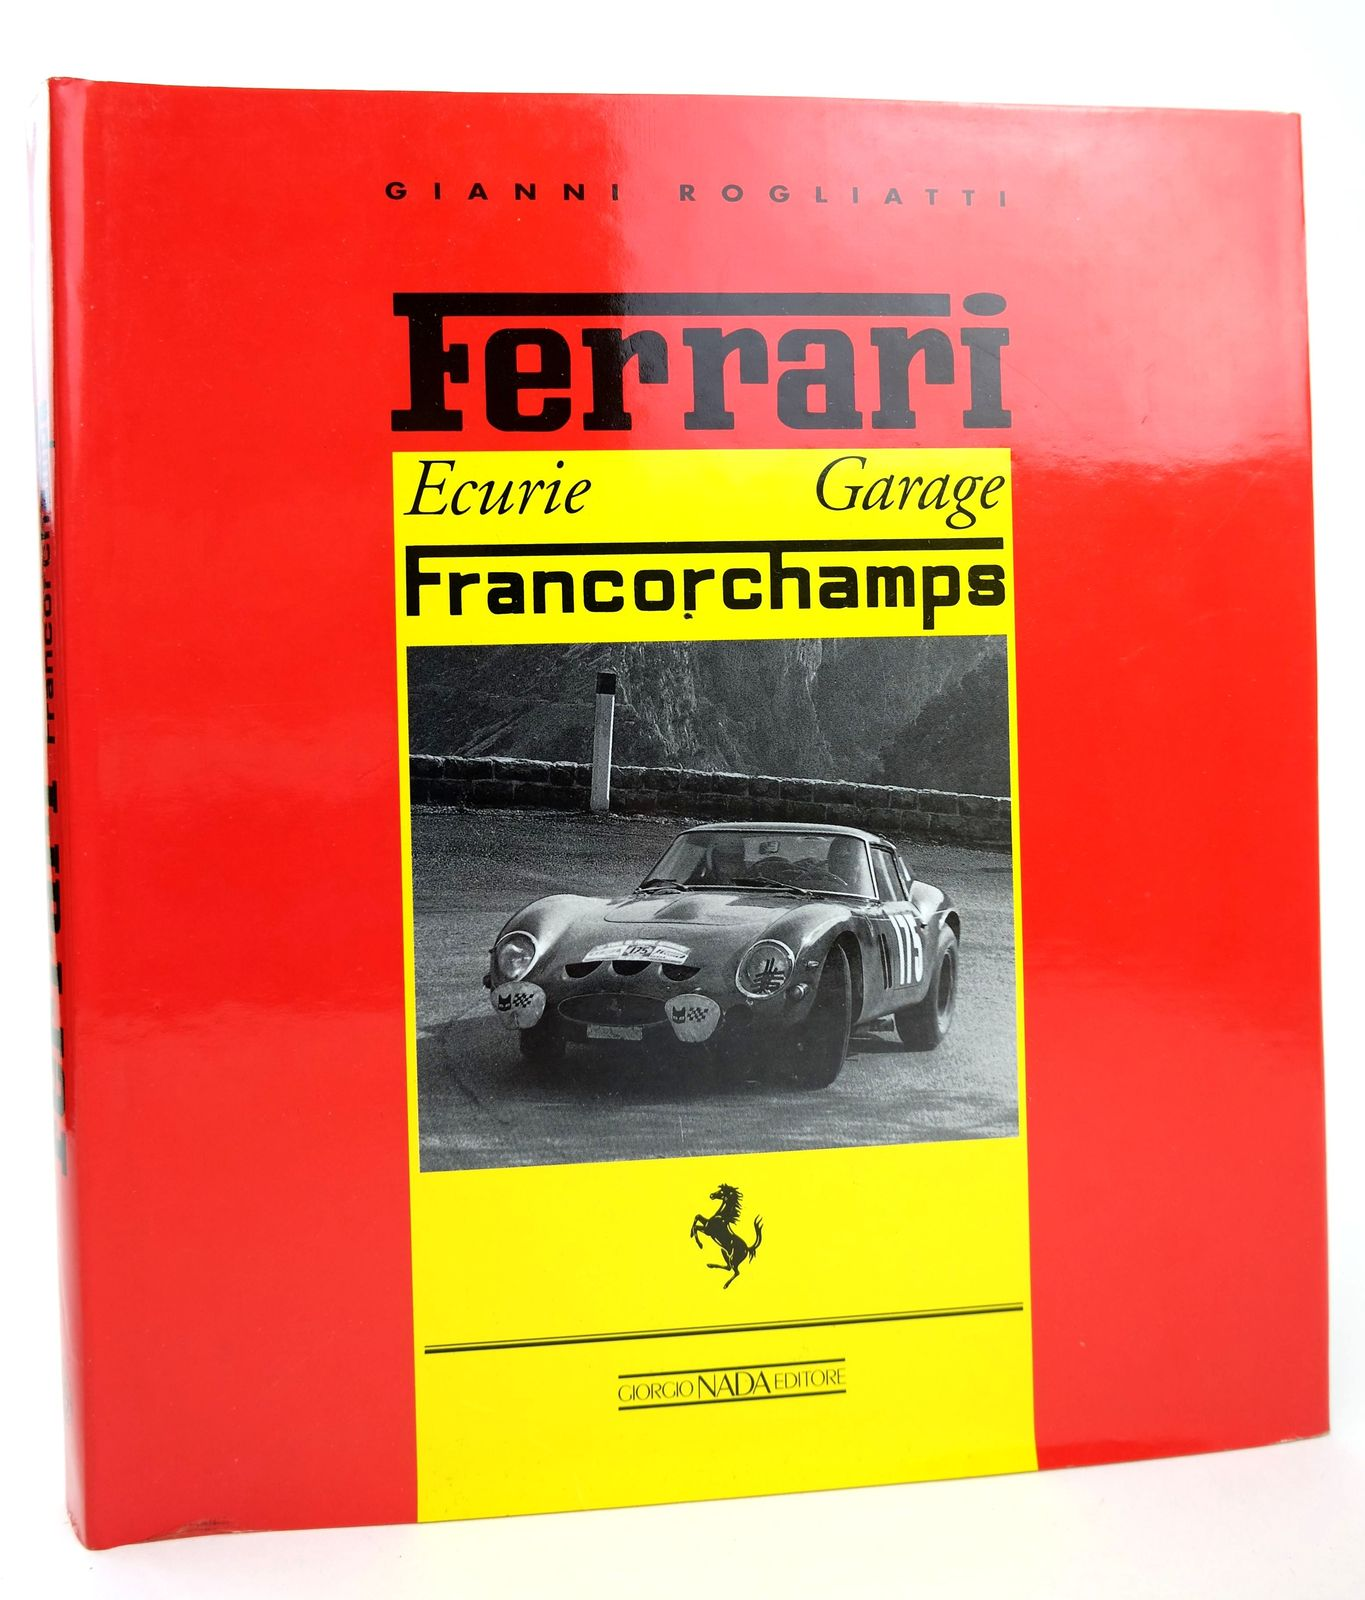 Photo of FERRARI ECURIE GARAGE FRANCORCHAMPS written by Rogliatti, Gianni published by Giorgio Nada Editore (STOCK CODE: 1818697)  for sale by Stella & Rose's Books